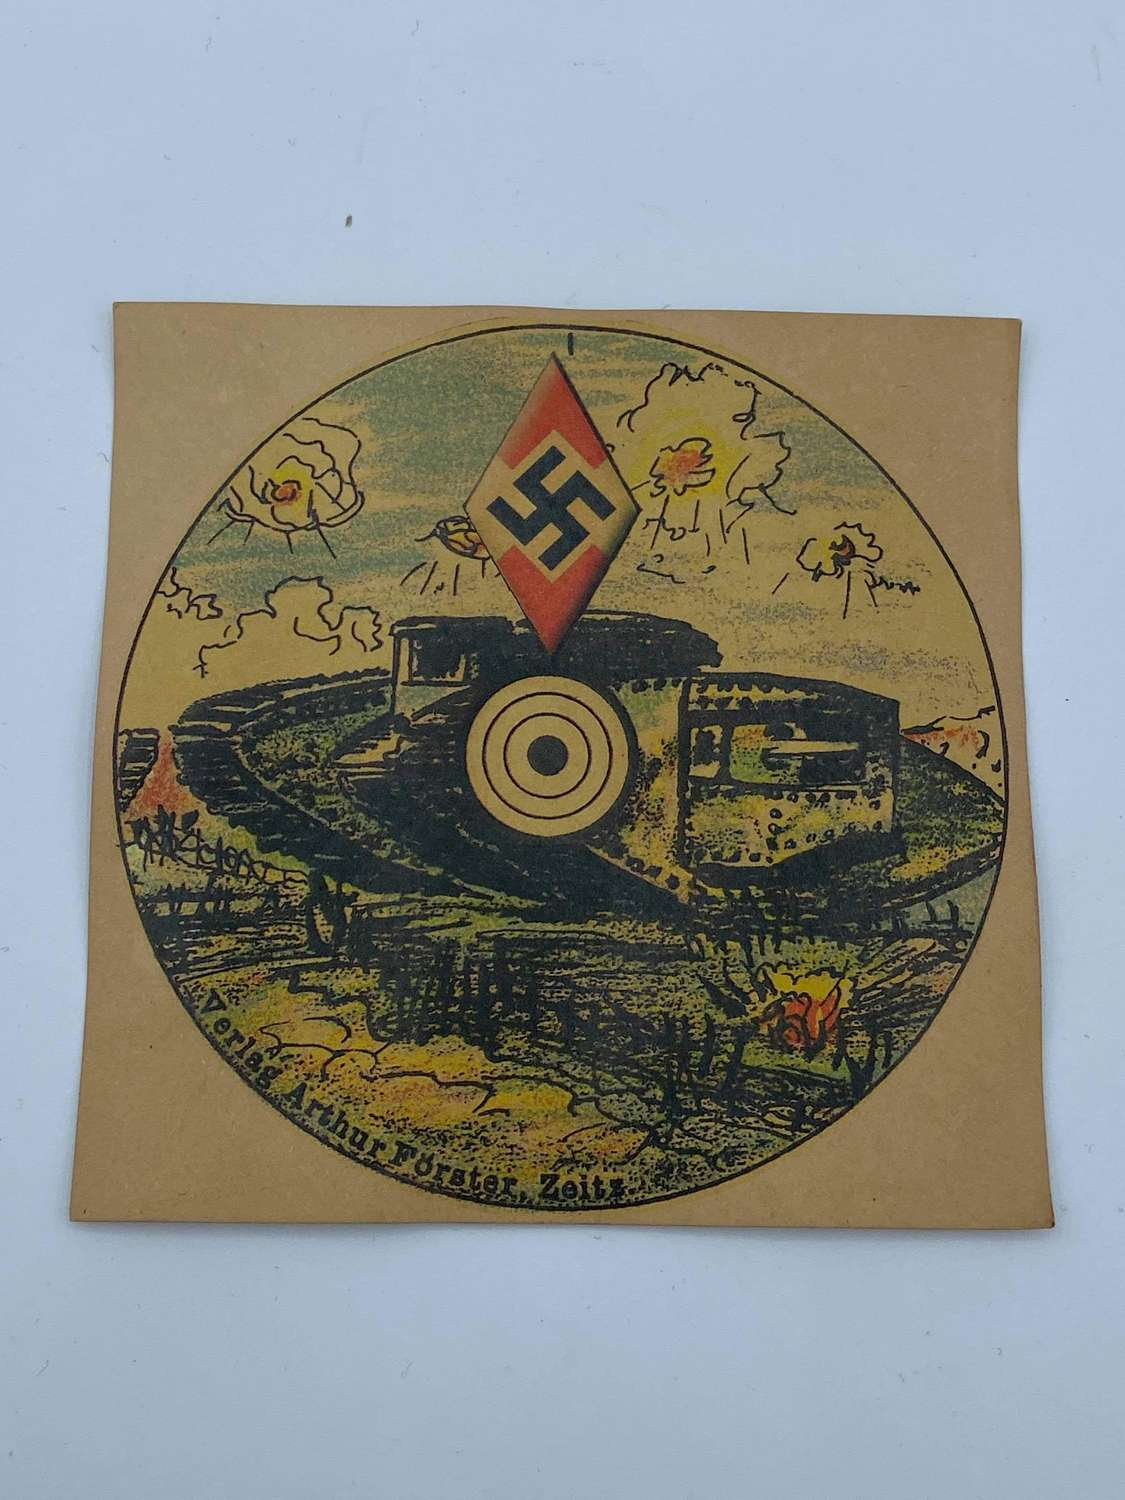 WW2 German Hitler Youth Pistol Tank Card Targets Arthur Forster Zeitz